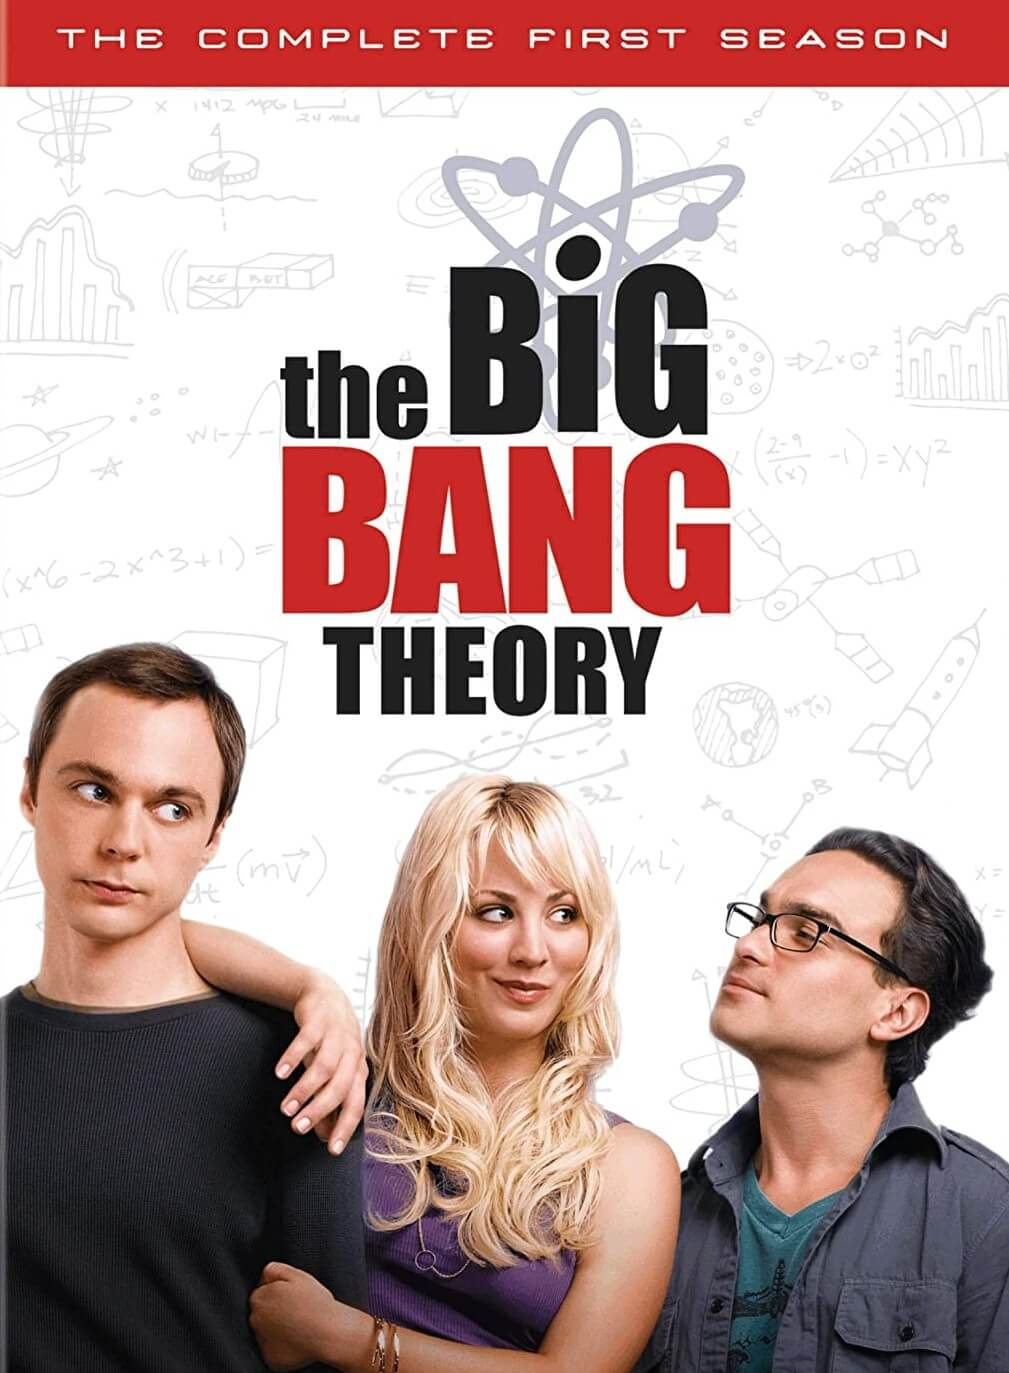 The Big Bang Theory S01 E17